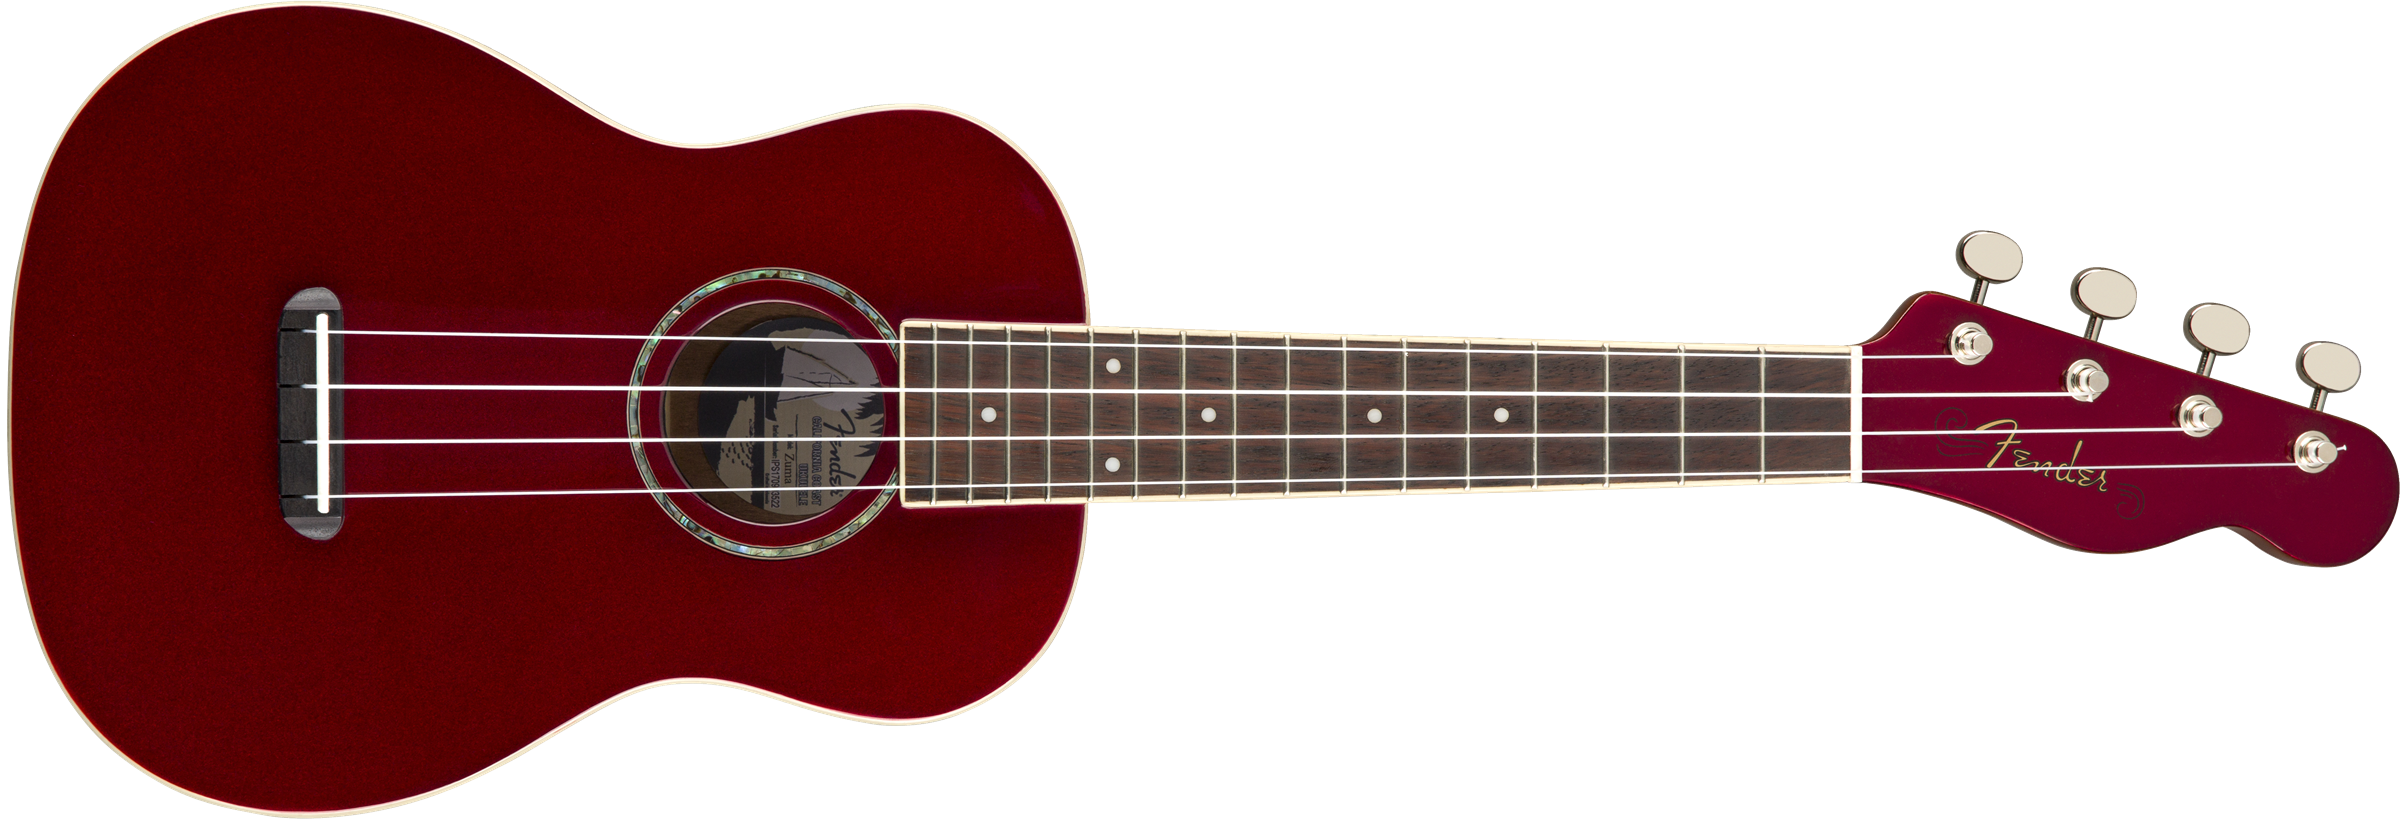 Fender Zuma Classic Concert Ukulele Candy Apple Red